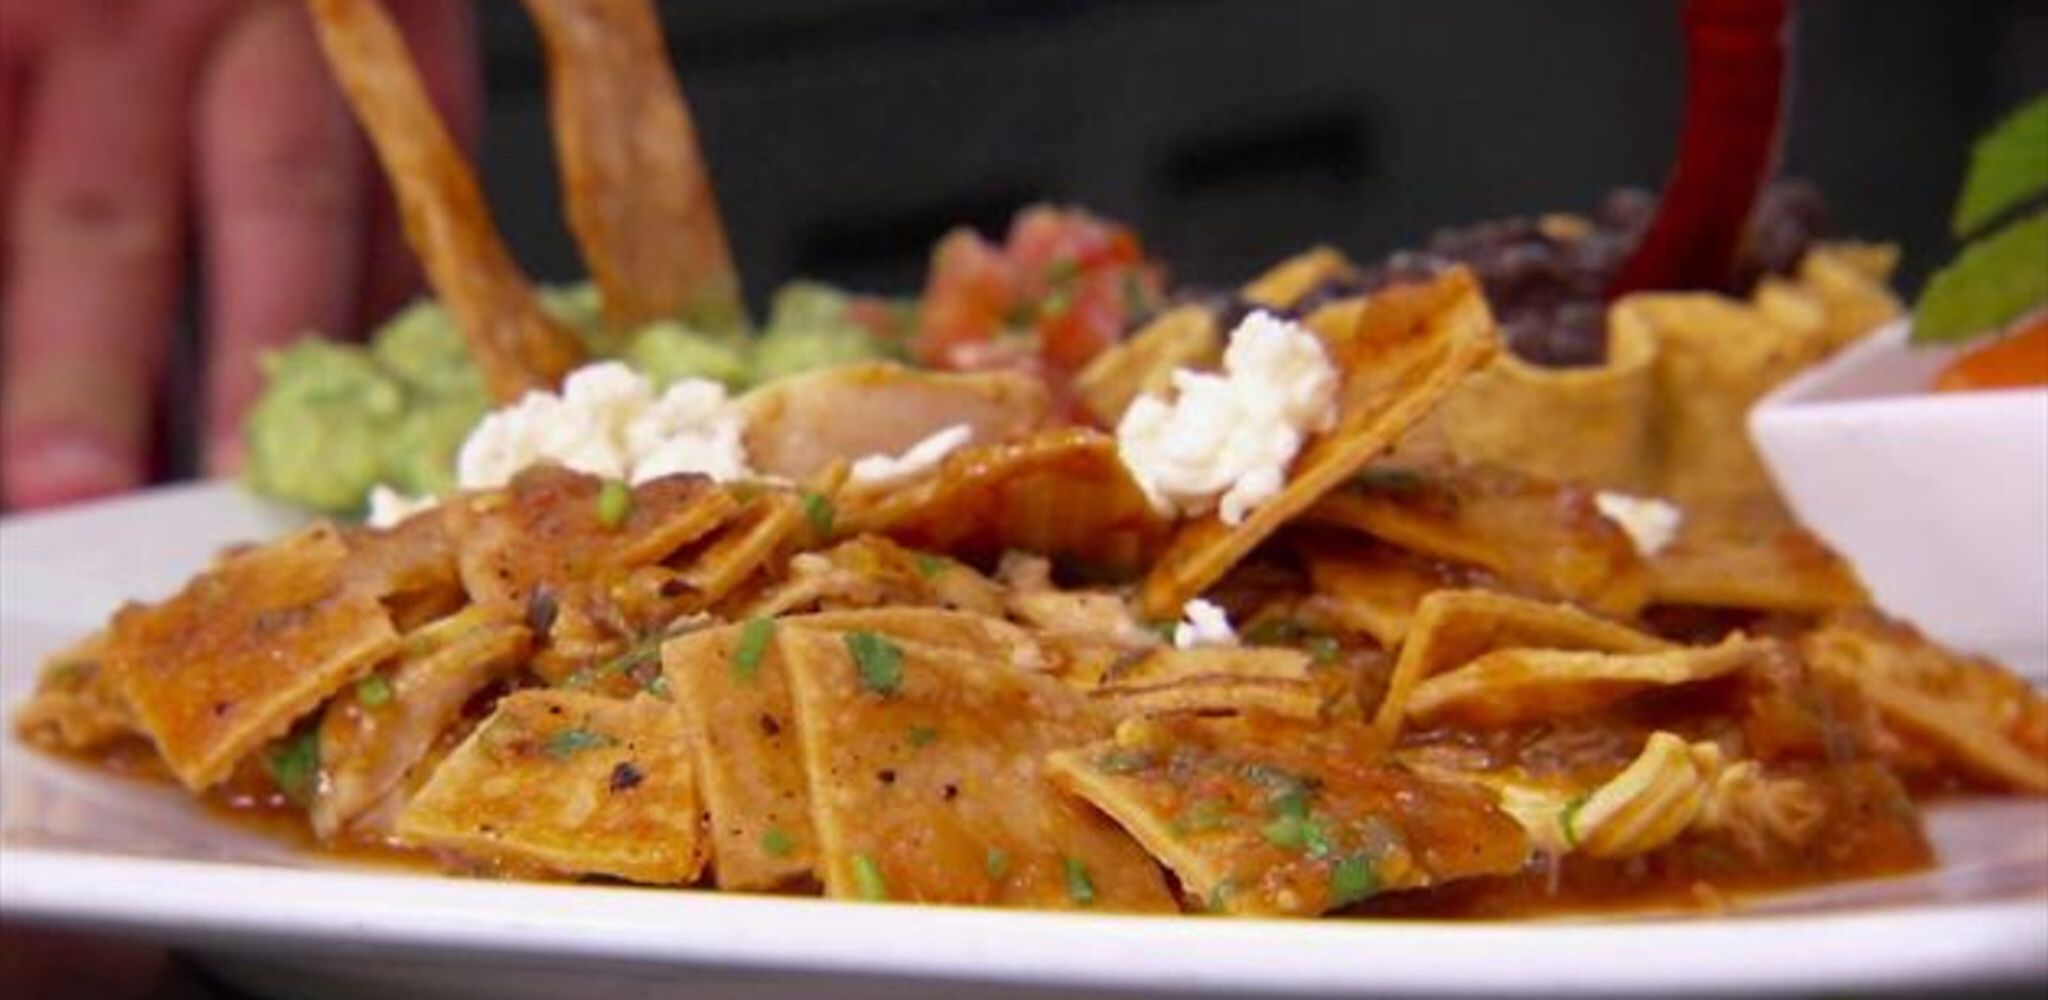 Chilaquiles rojos traditional mexican breakfast dish